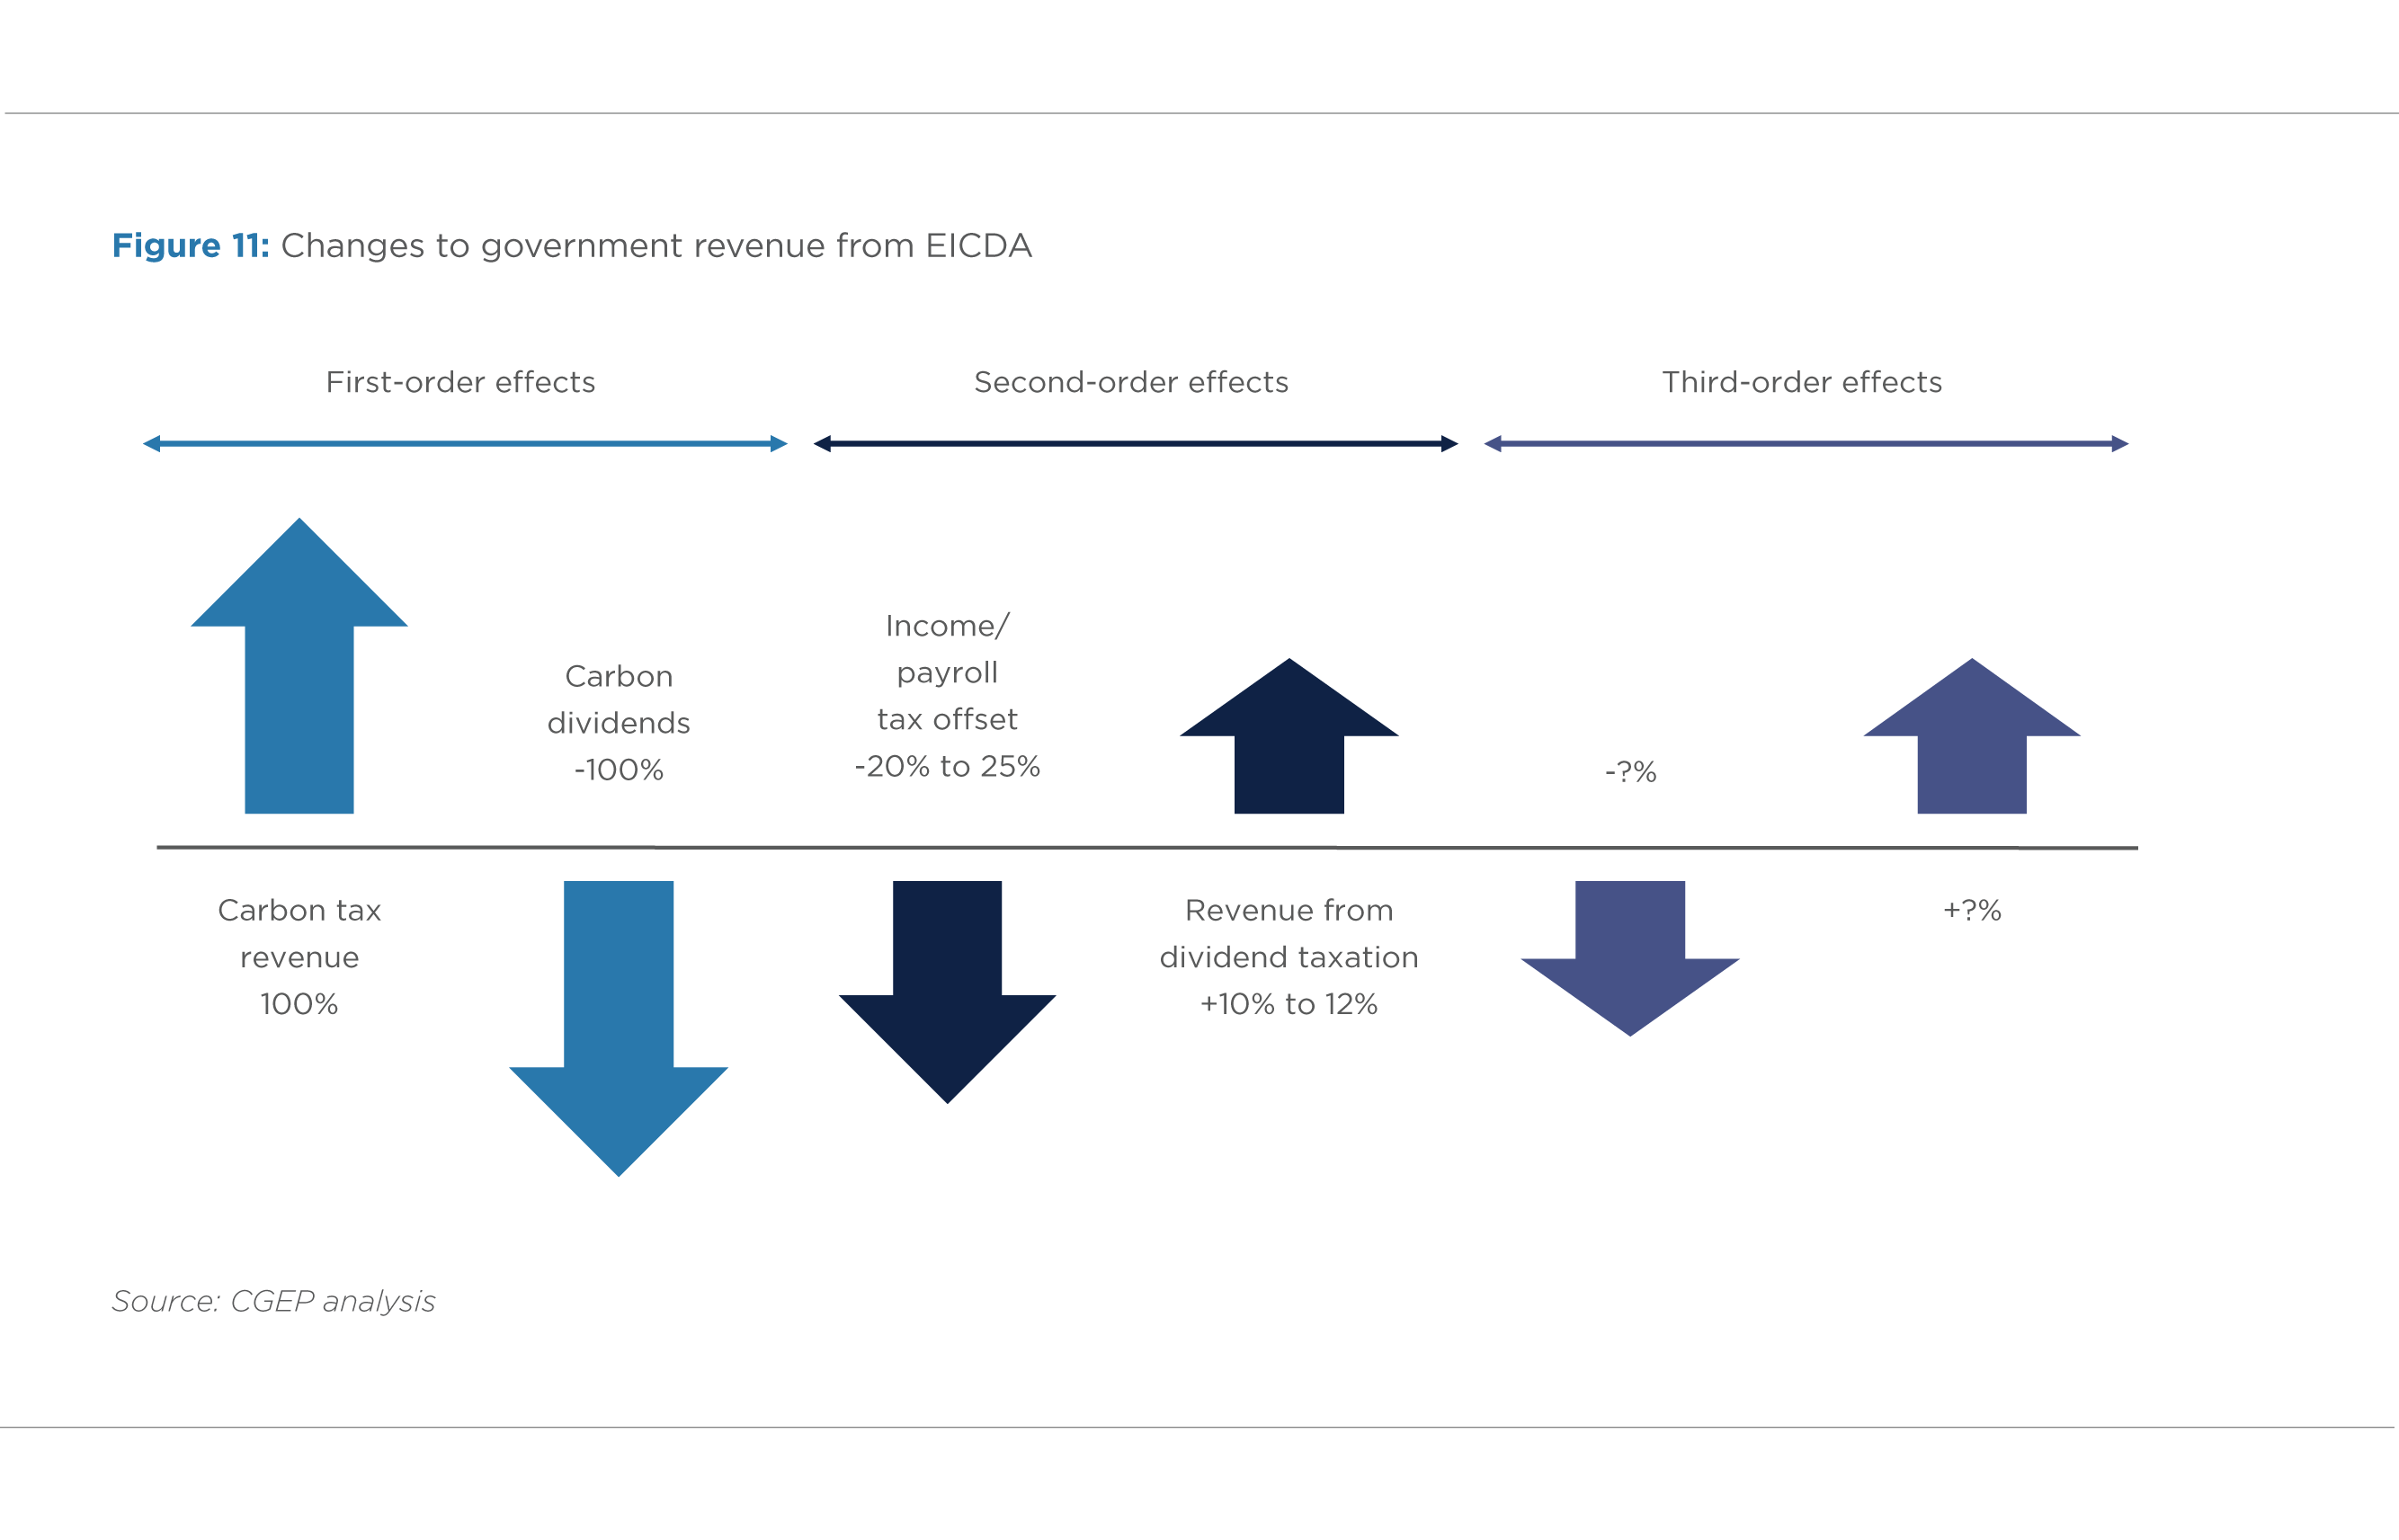 FIGURE 11. CHANGES TO GOVERNMENT REVENUE FROM EICDA